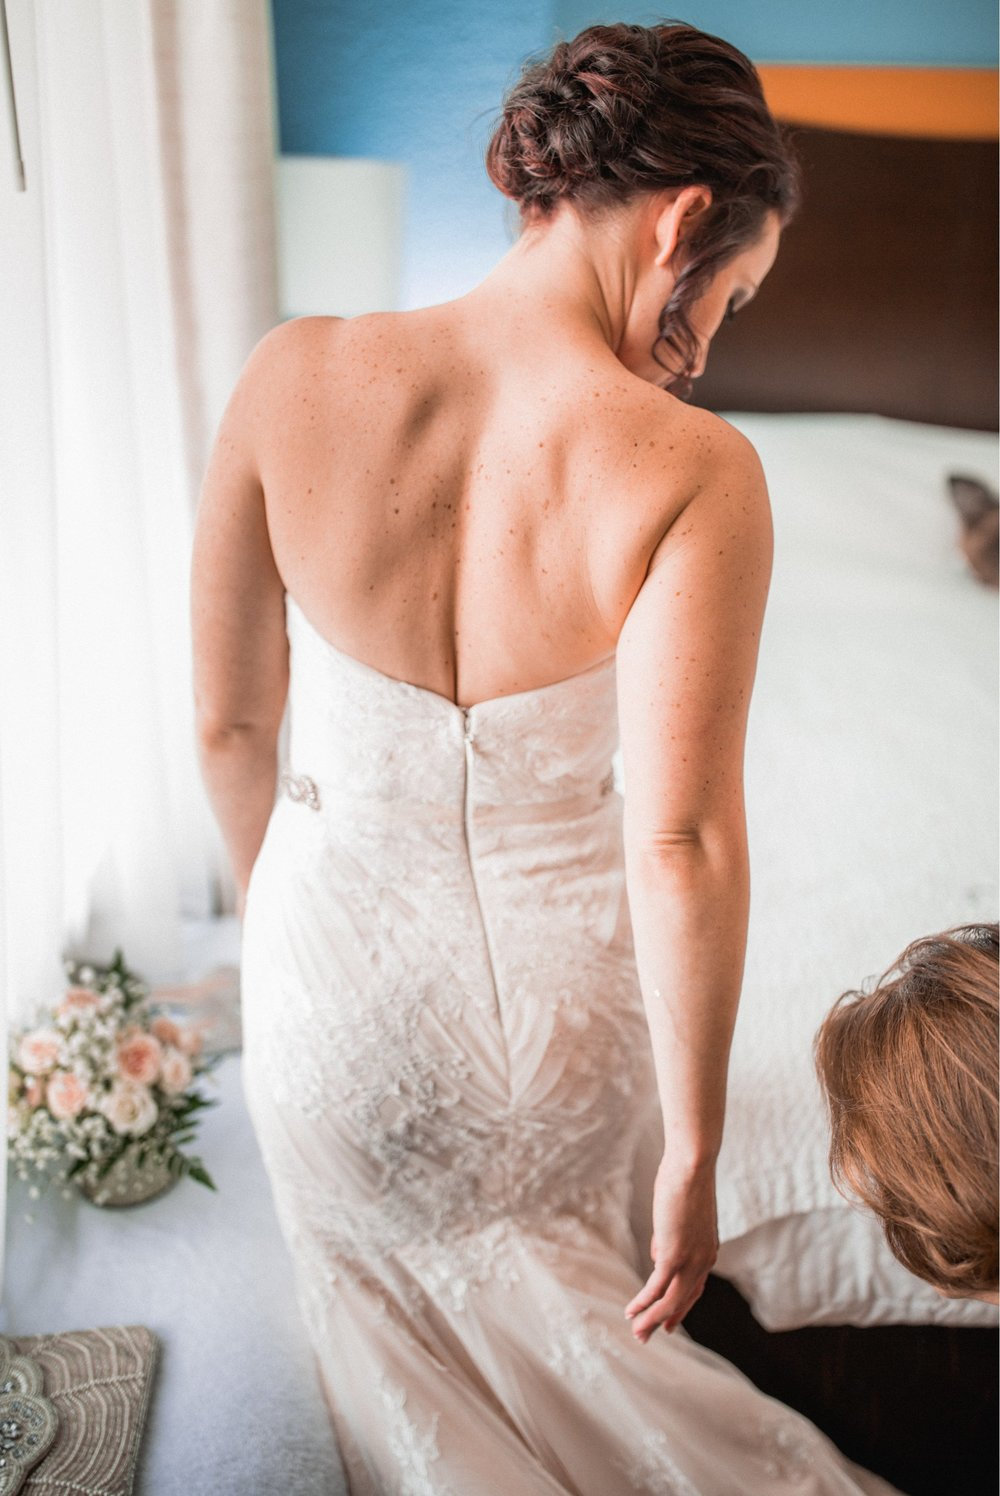 Romantic Pink Spring Wedding - Katie + Joe by Orlando Wedding Photographer Shaina DeCiryan 11.jpg